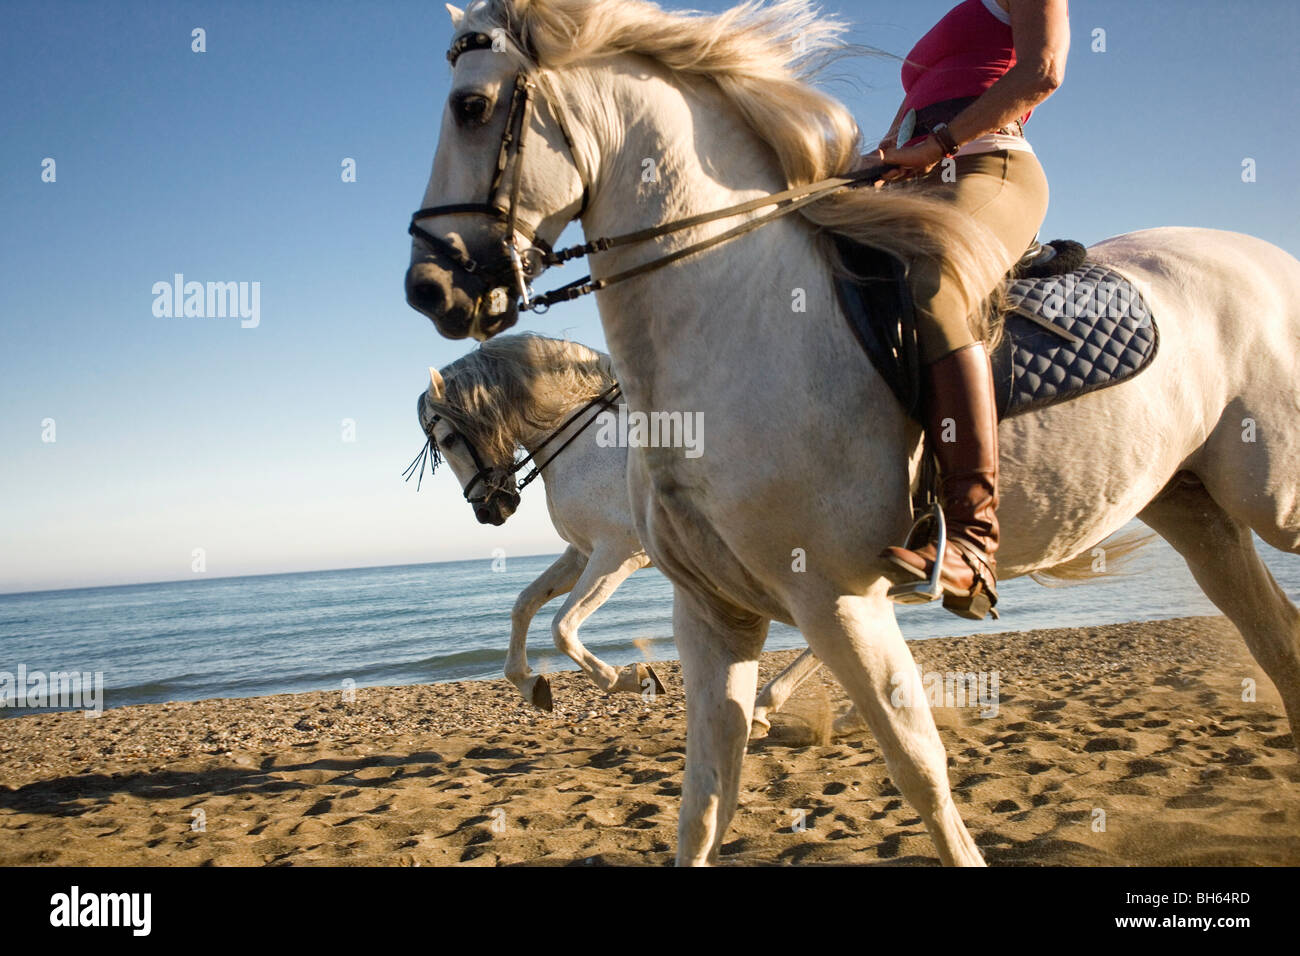 Two women riding horses on beach - Stock Image